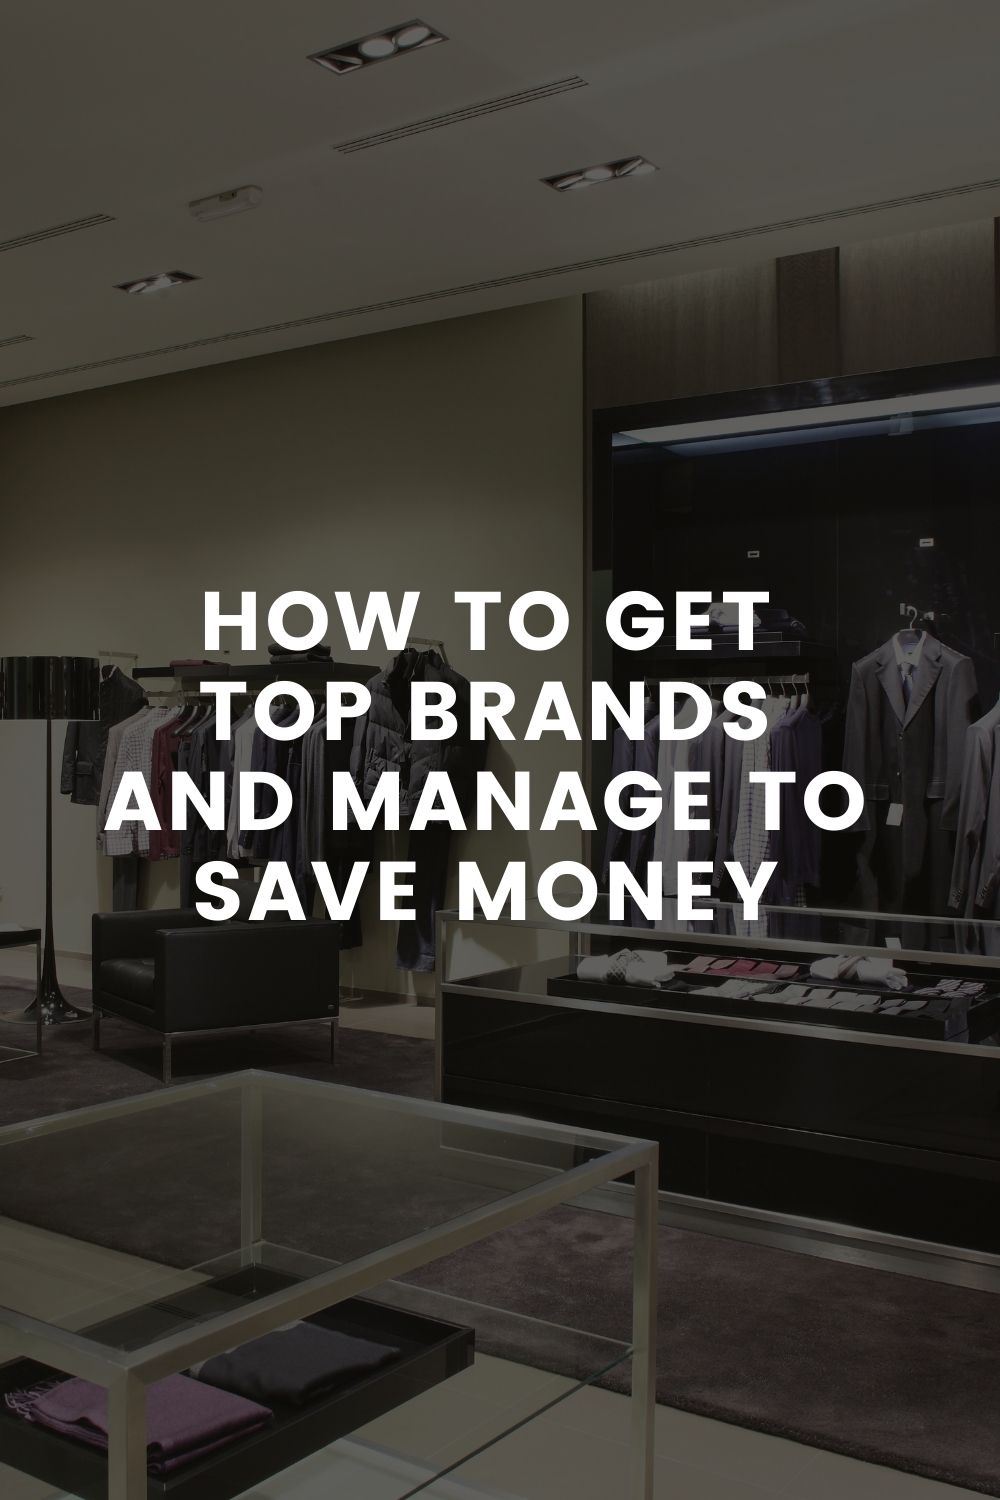 How to Get Top Brands and Manage to Save Money